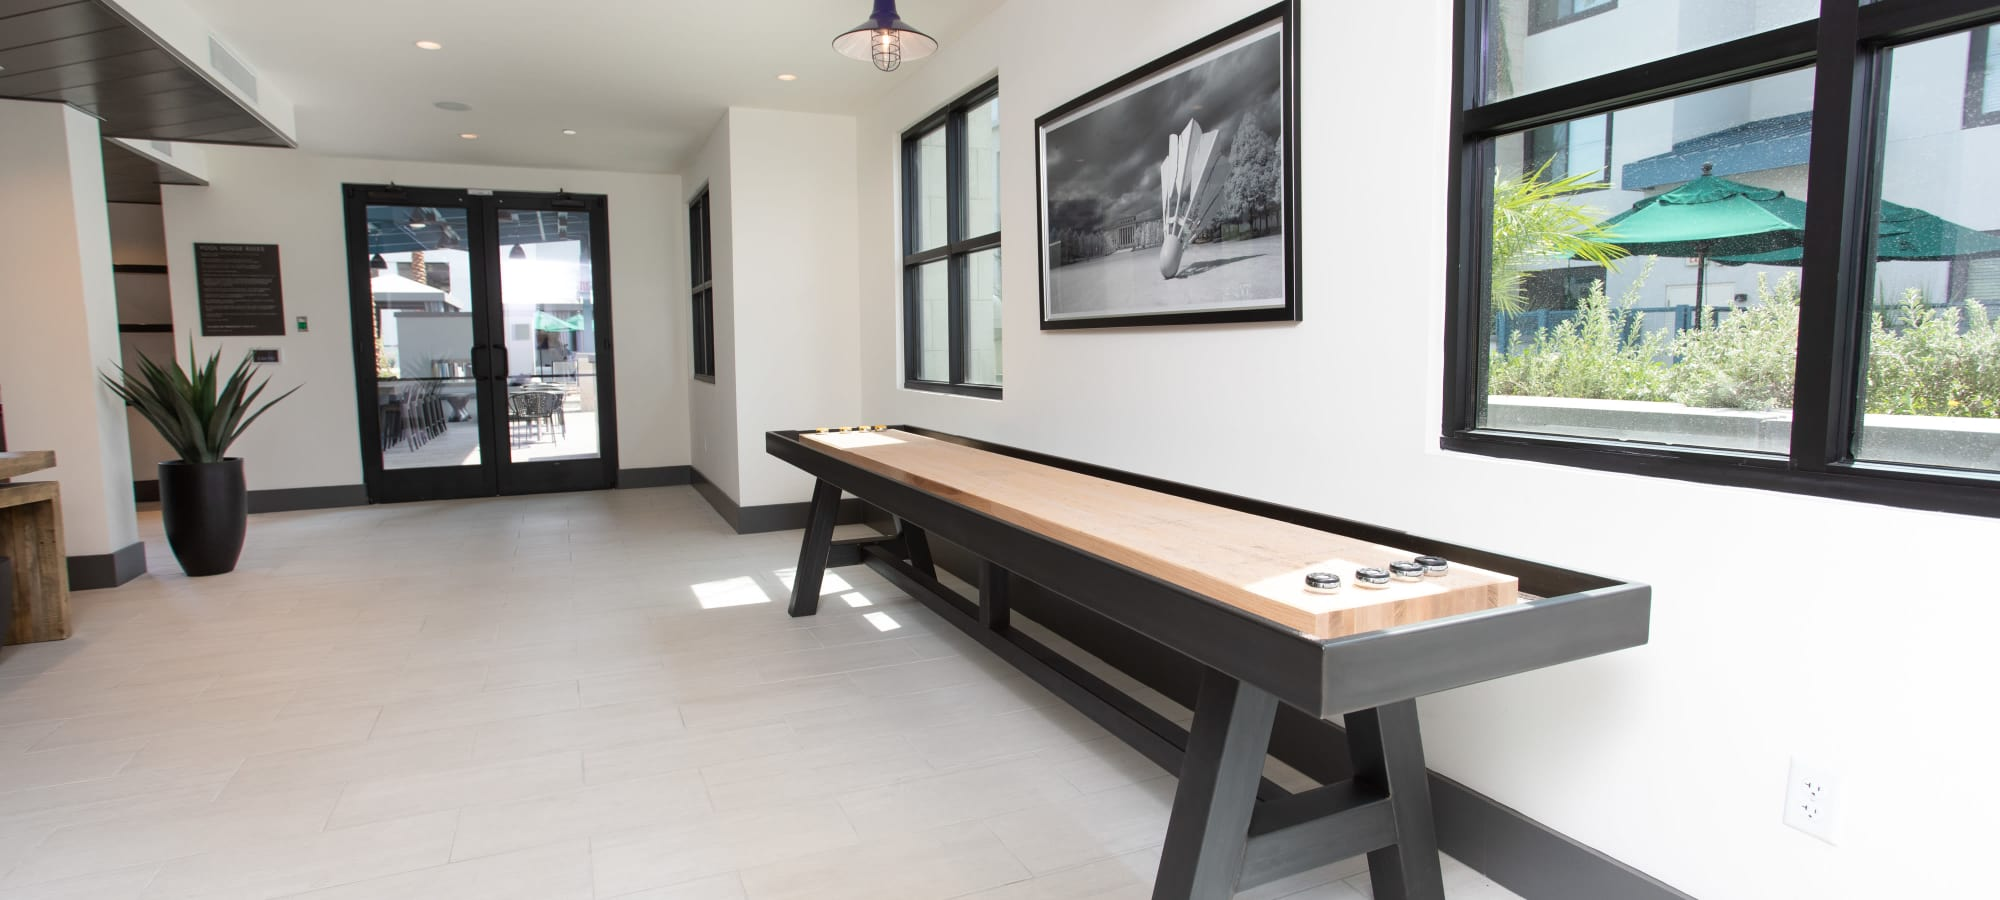 Brand new shuffleboard table at Lakeside Drive Apartments in Tempe, Arizona